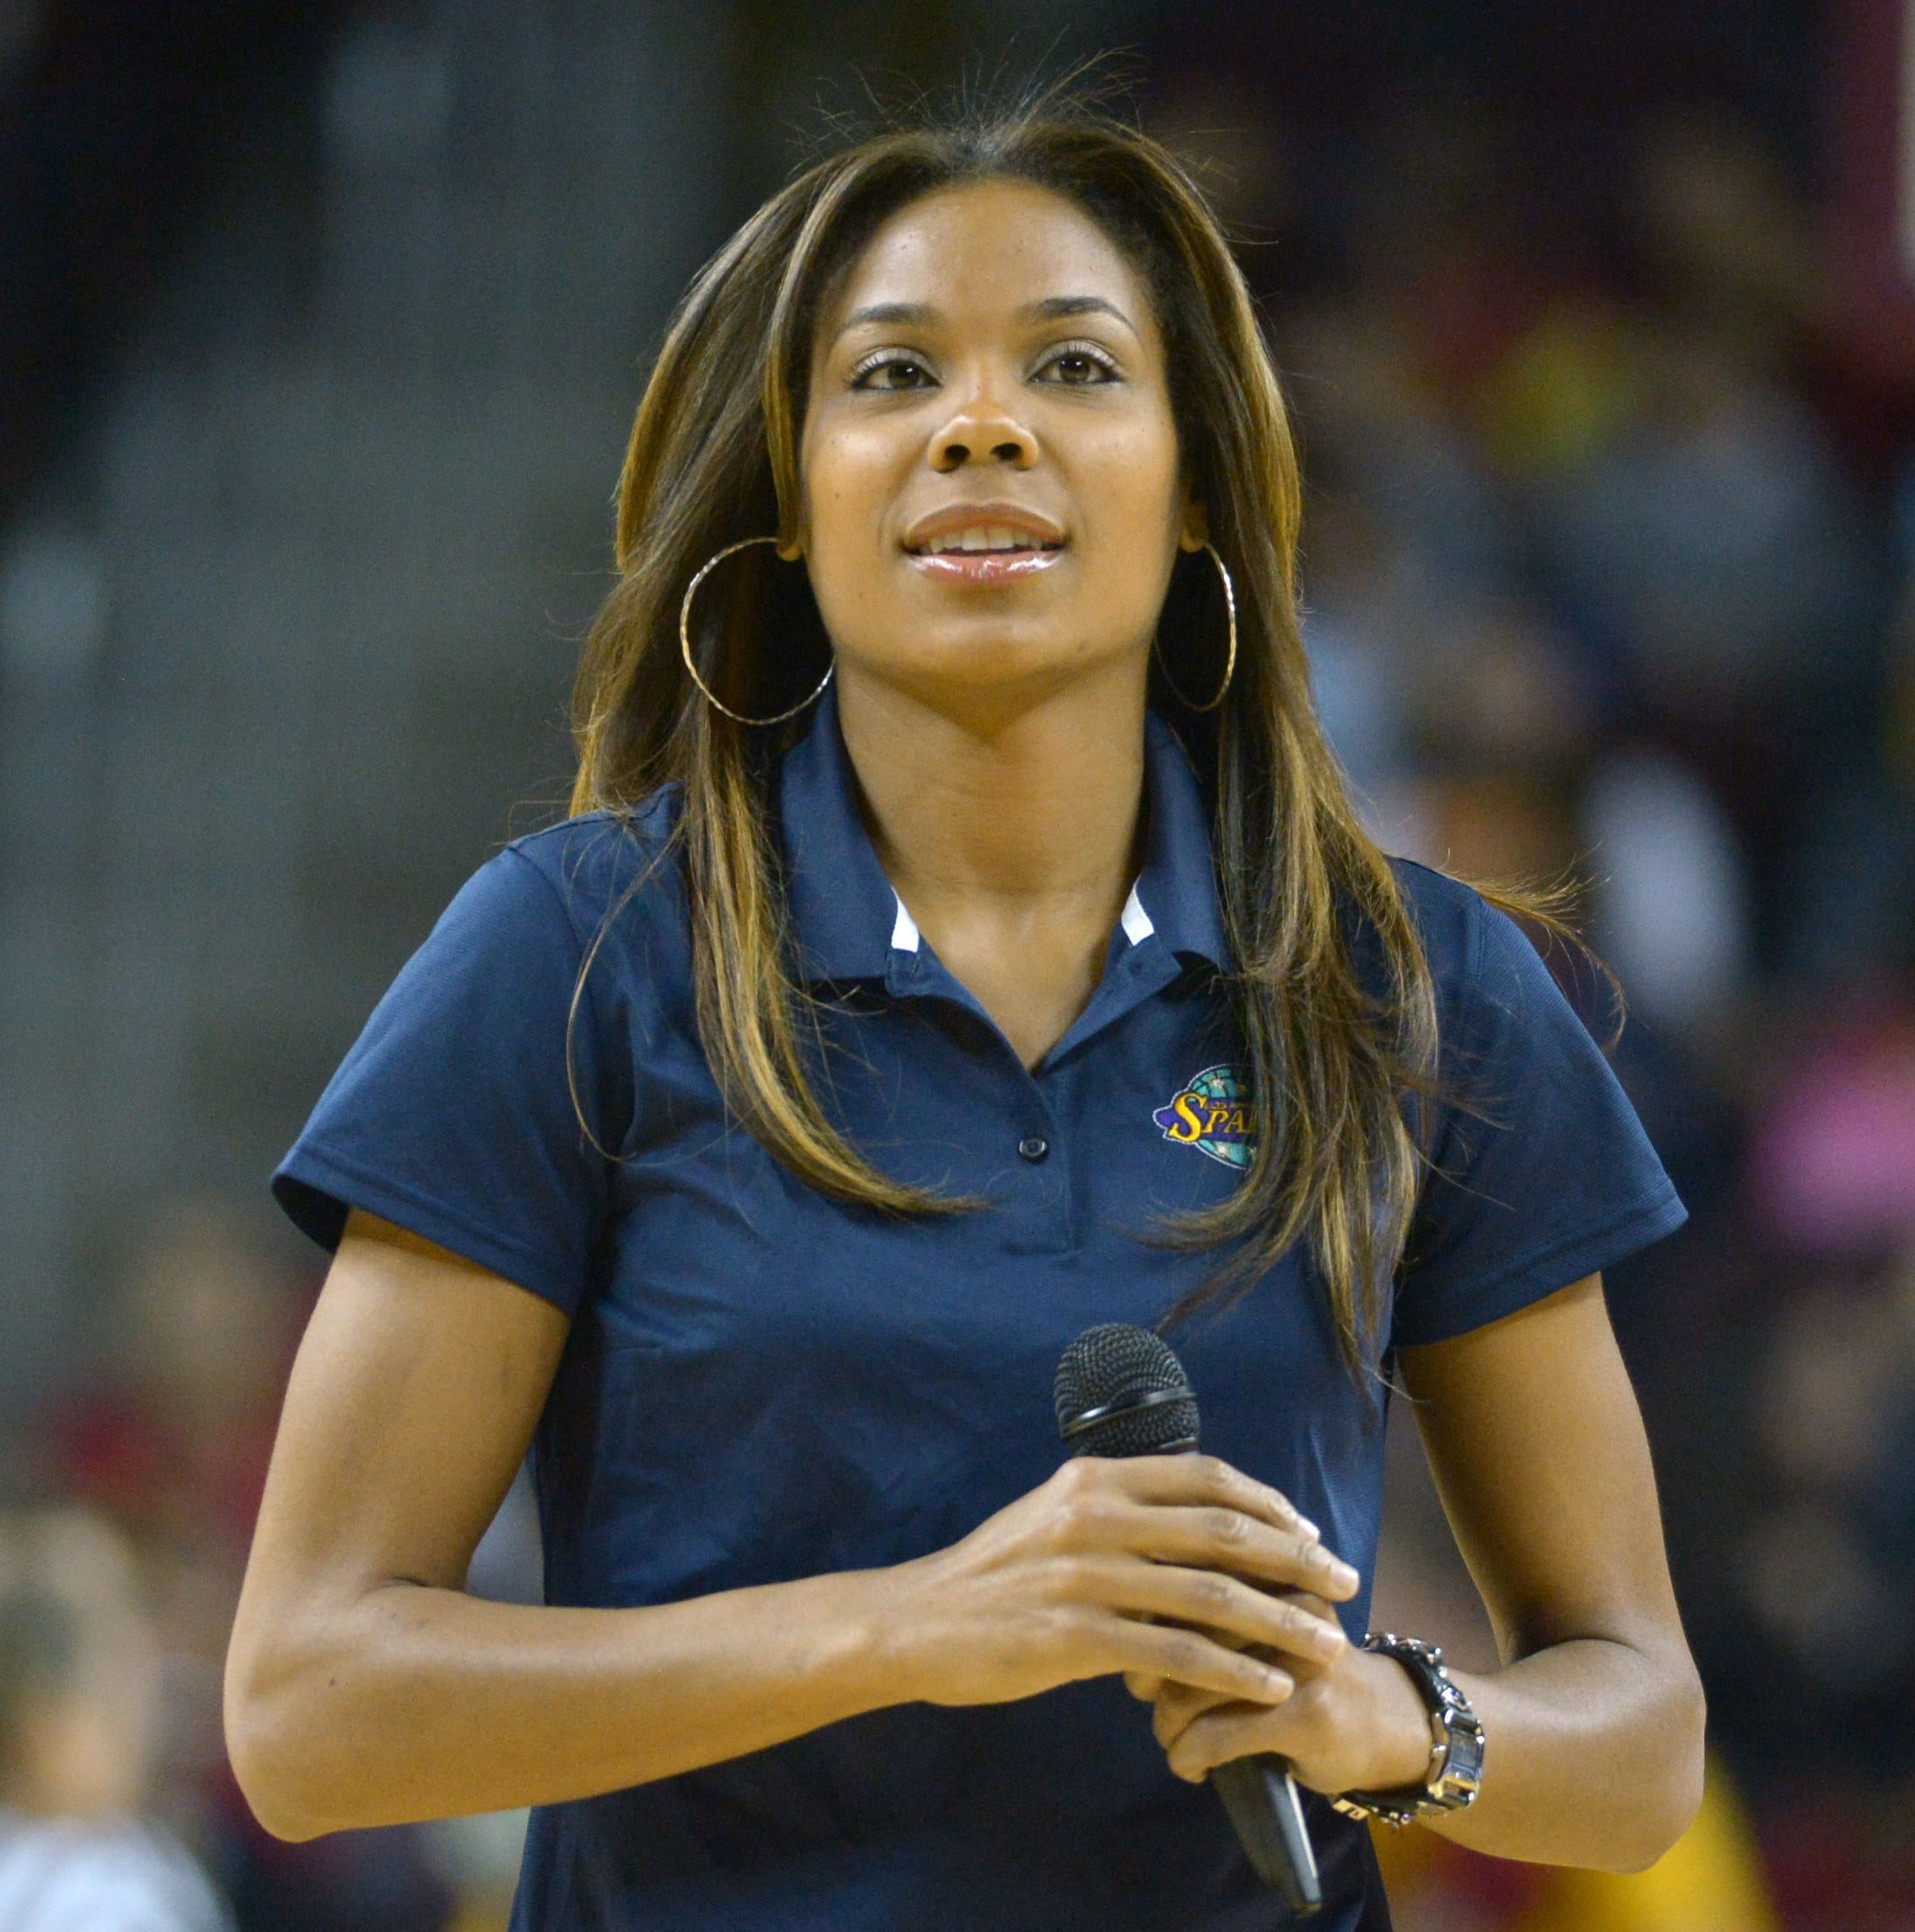 Ex-Phoenix Mercury star Lindsey Harding is now Philadelphia 76ers' first female coach